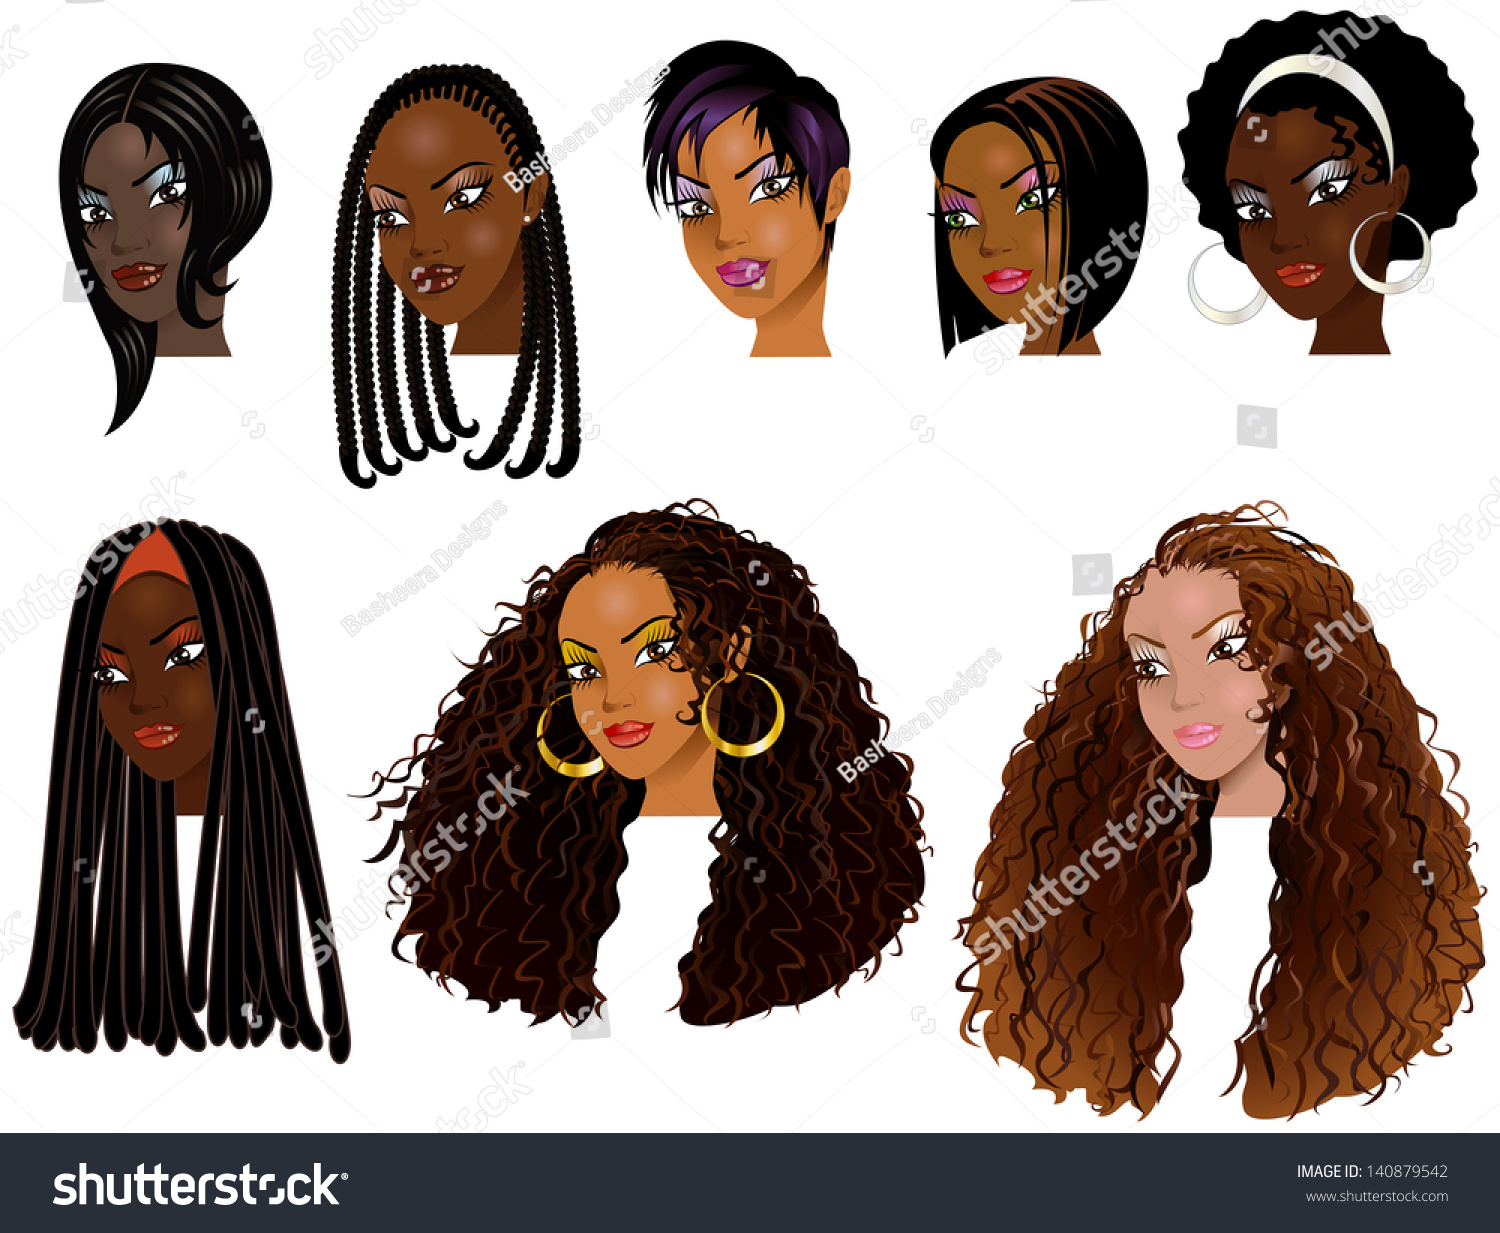 Vector Illustration Black Women Faces Great Stock Vector